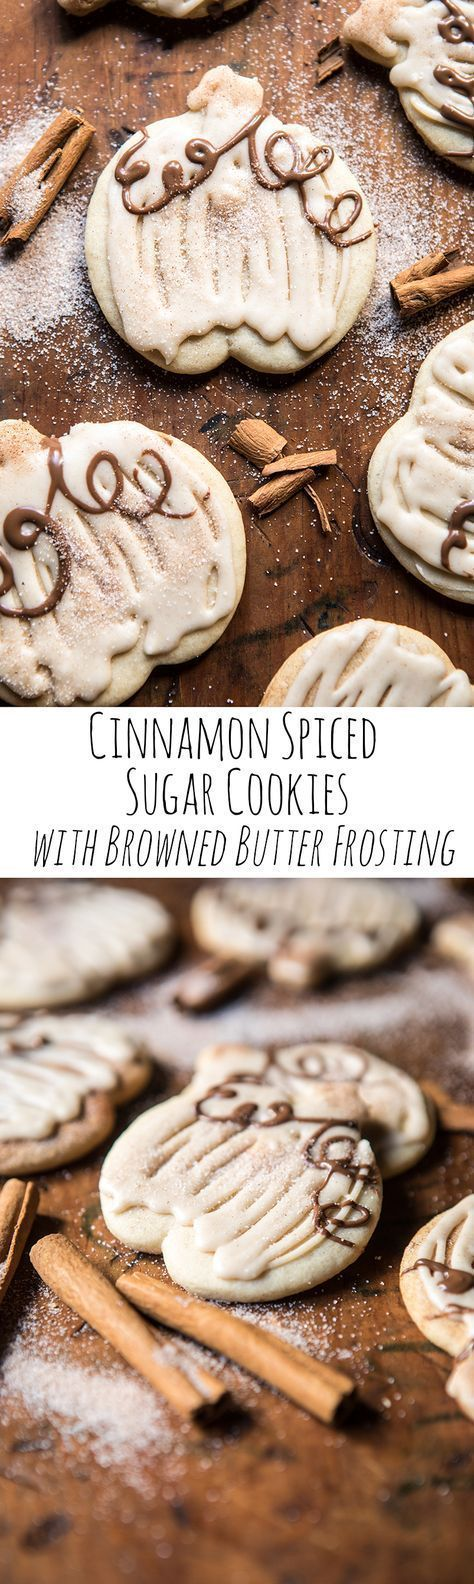 Cinnamon Spiced Sugar Cookies with Browned Butter Frosting #frostings